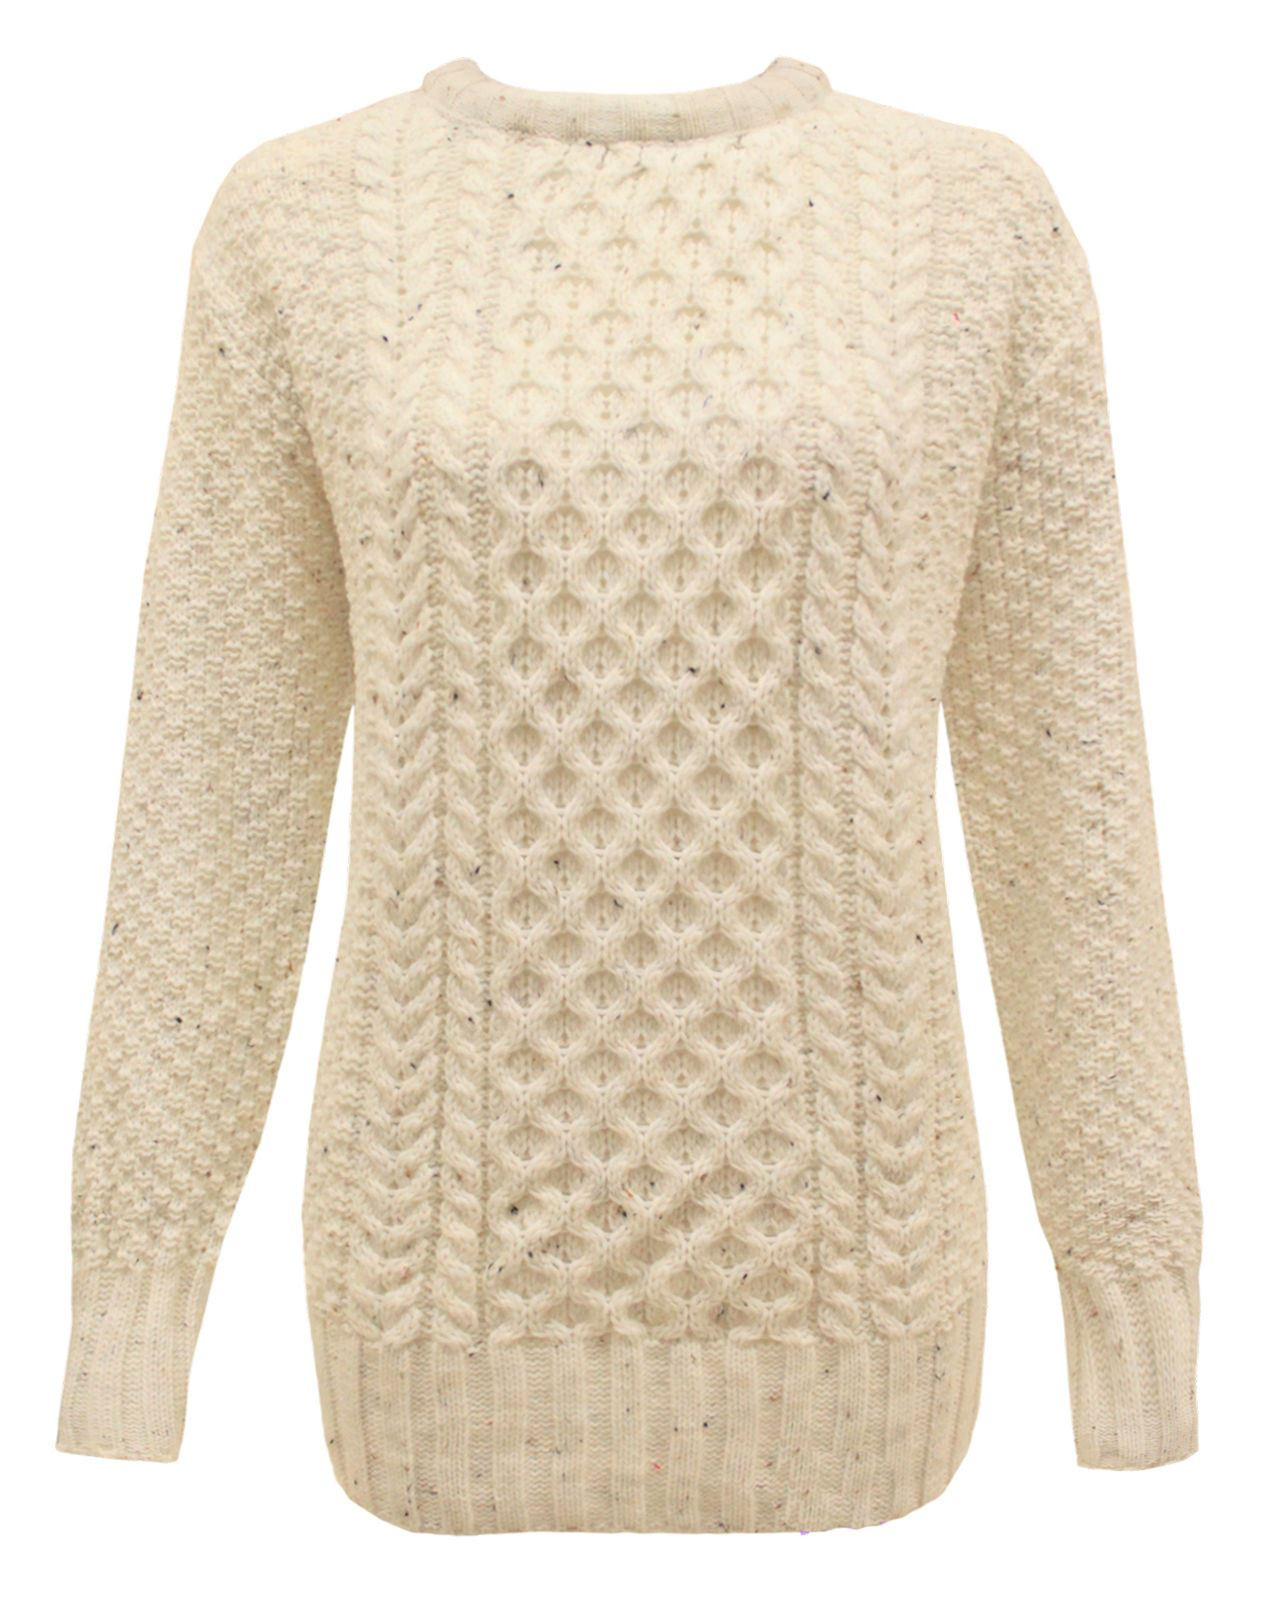 New La S Women Crew Neck Long Sleeve Knitted Cable Knit Ladies Cable Knit Sweater Of Charming 49 Photos Ladies Cable Knit Sweater